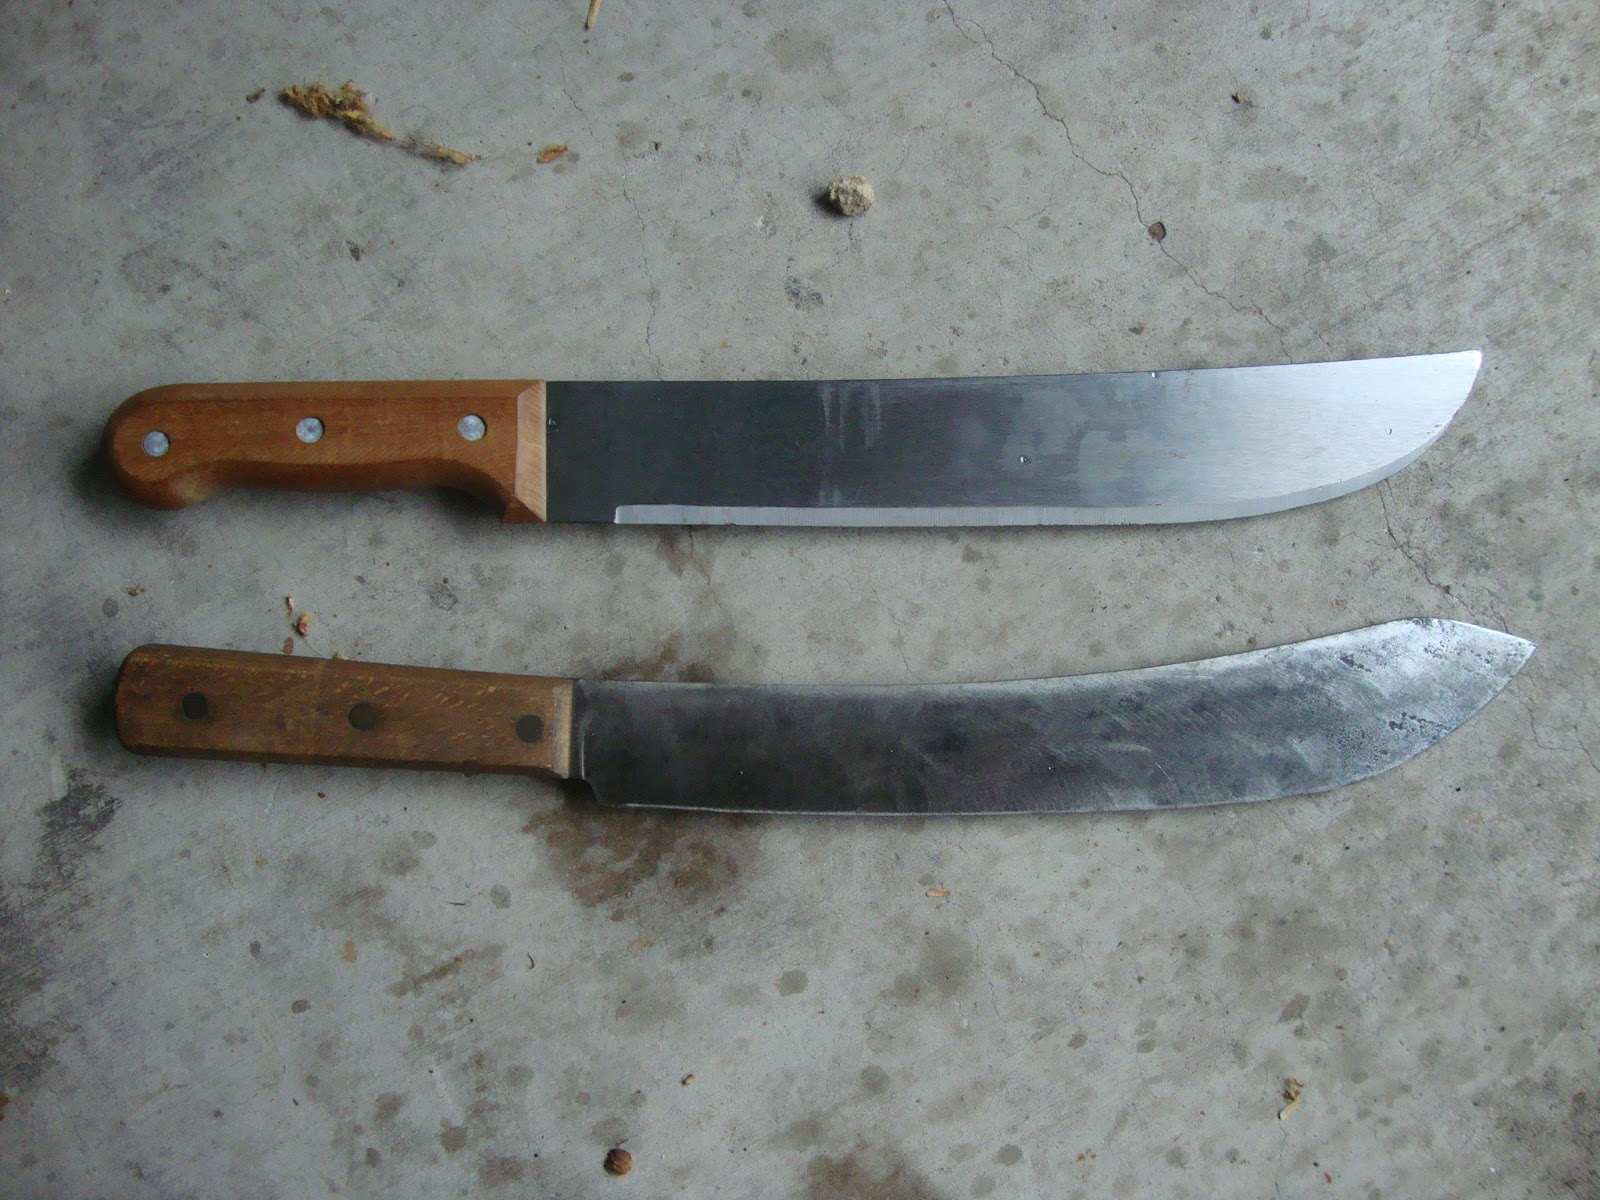 the woods roamer photo gallery of historical butcher slicing and